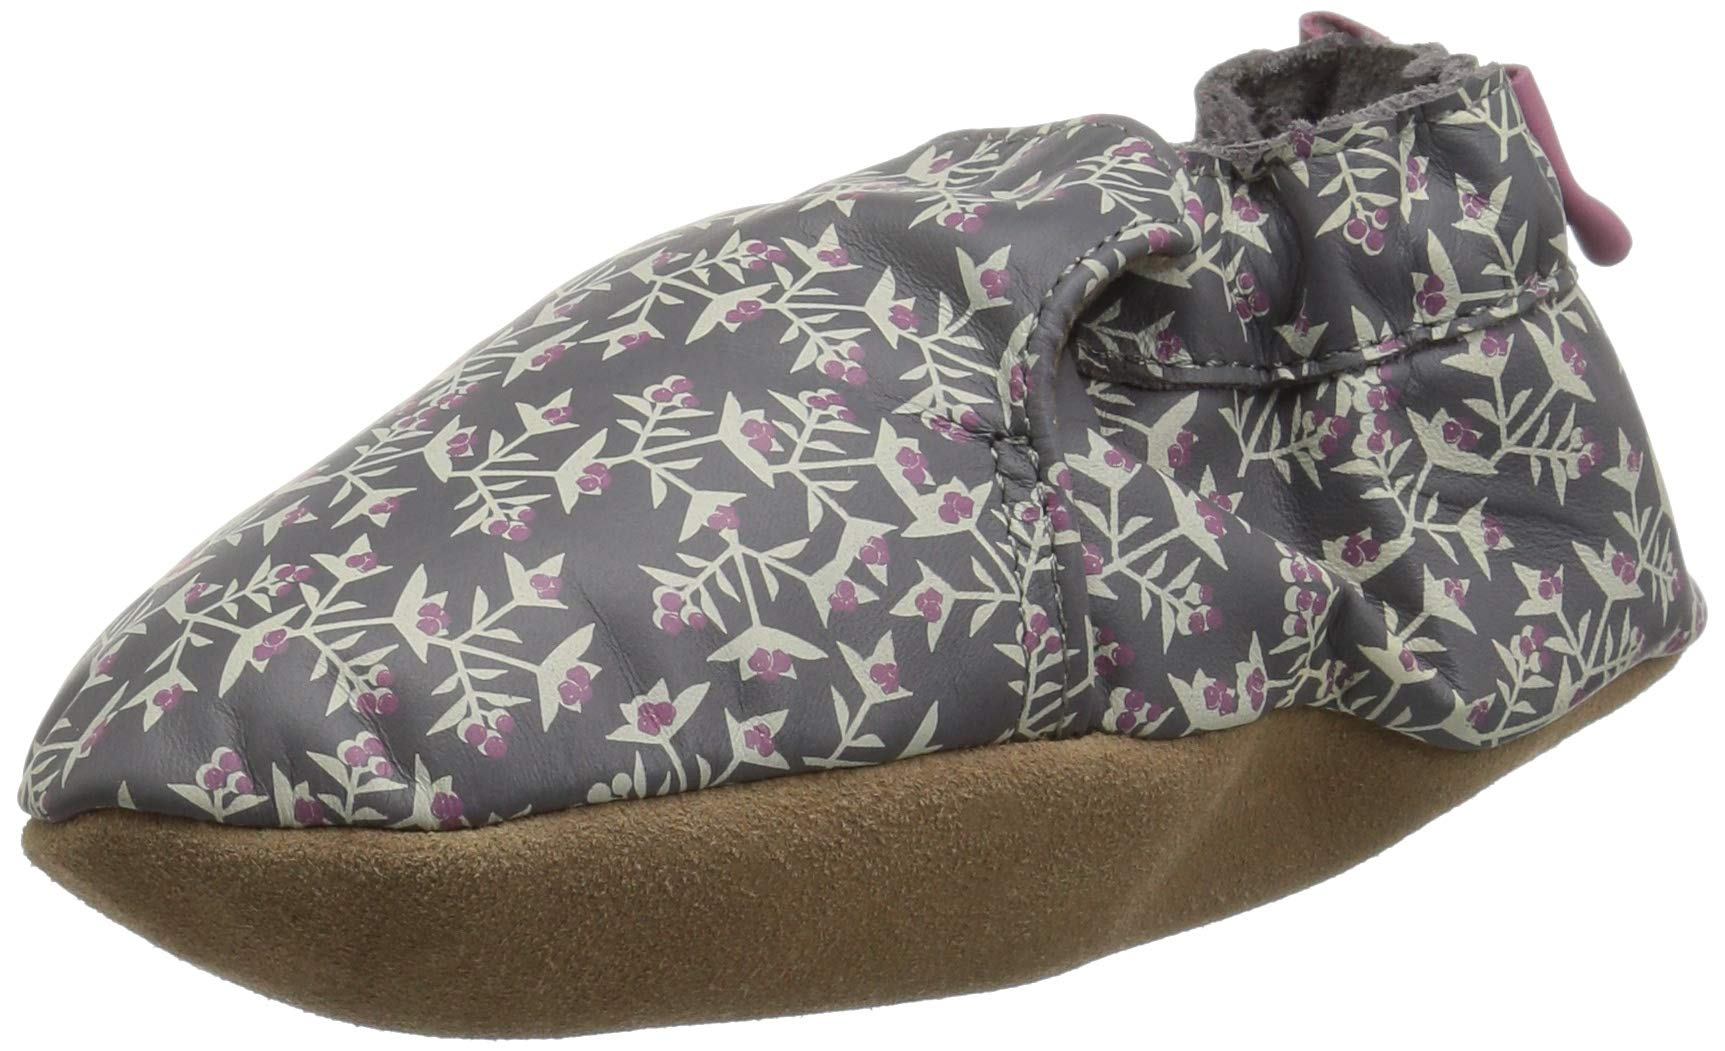 Robeez Girls' Soft Soles Bow Back Crib Shoe, Berry Beautiful Grey, 12-18 Months M US Infant